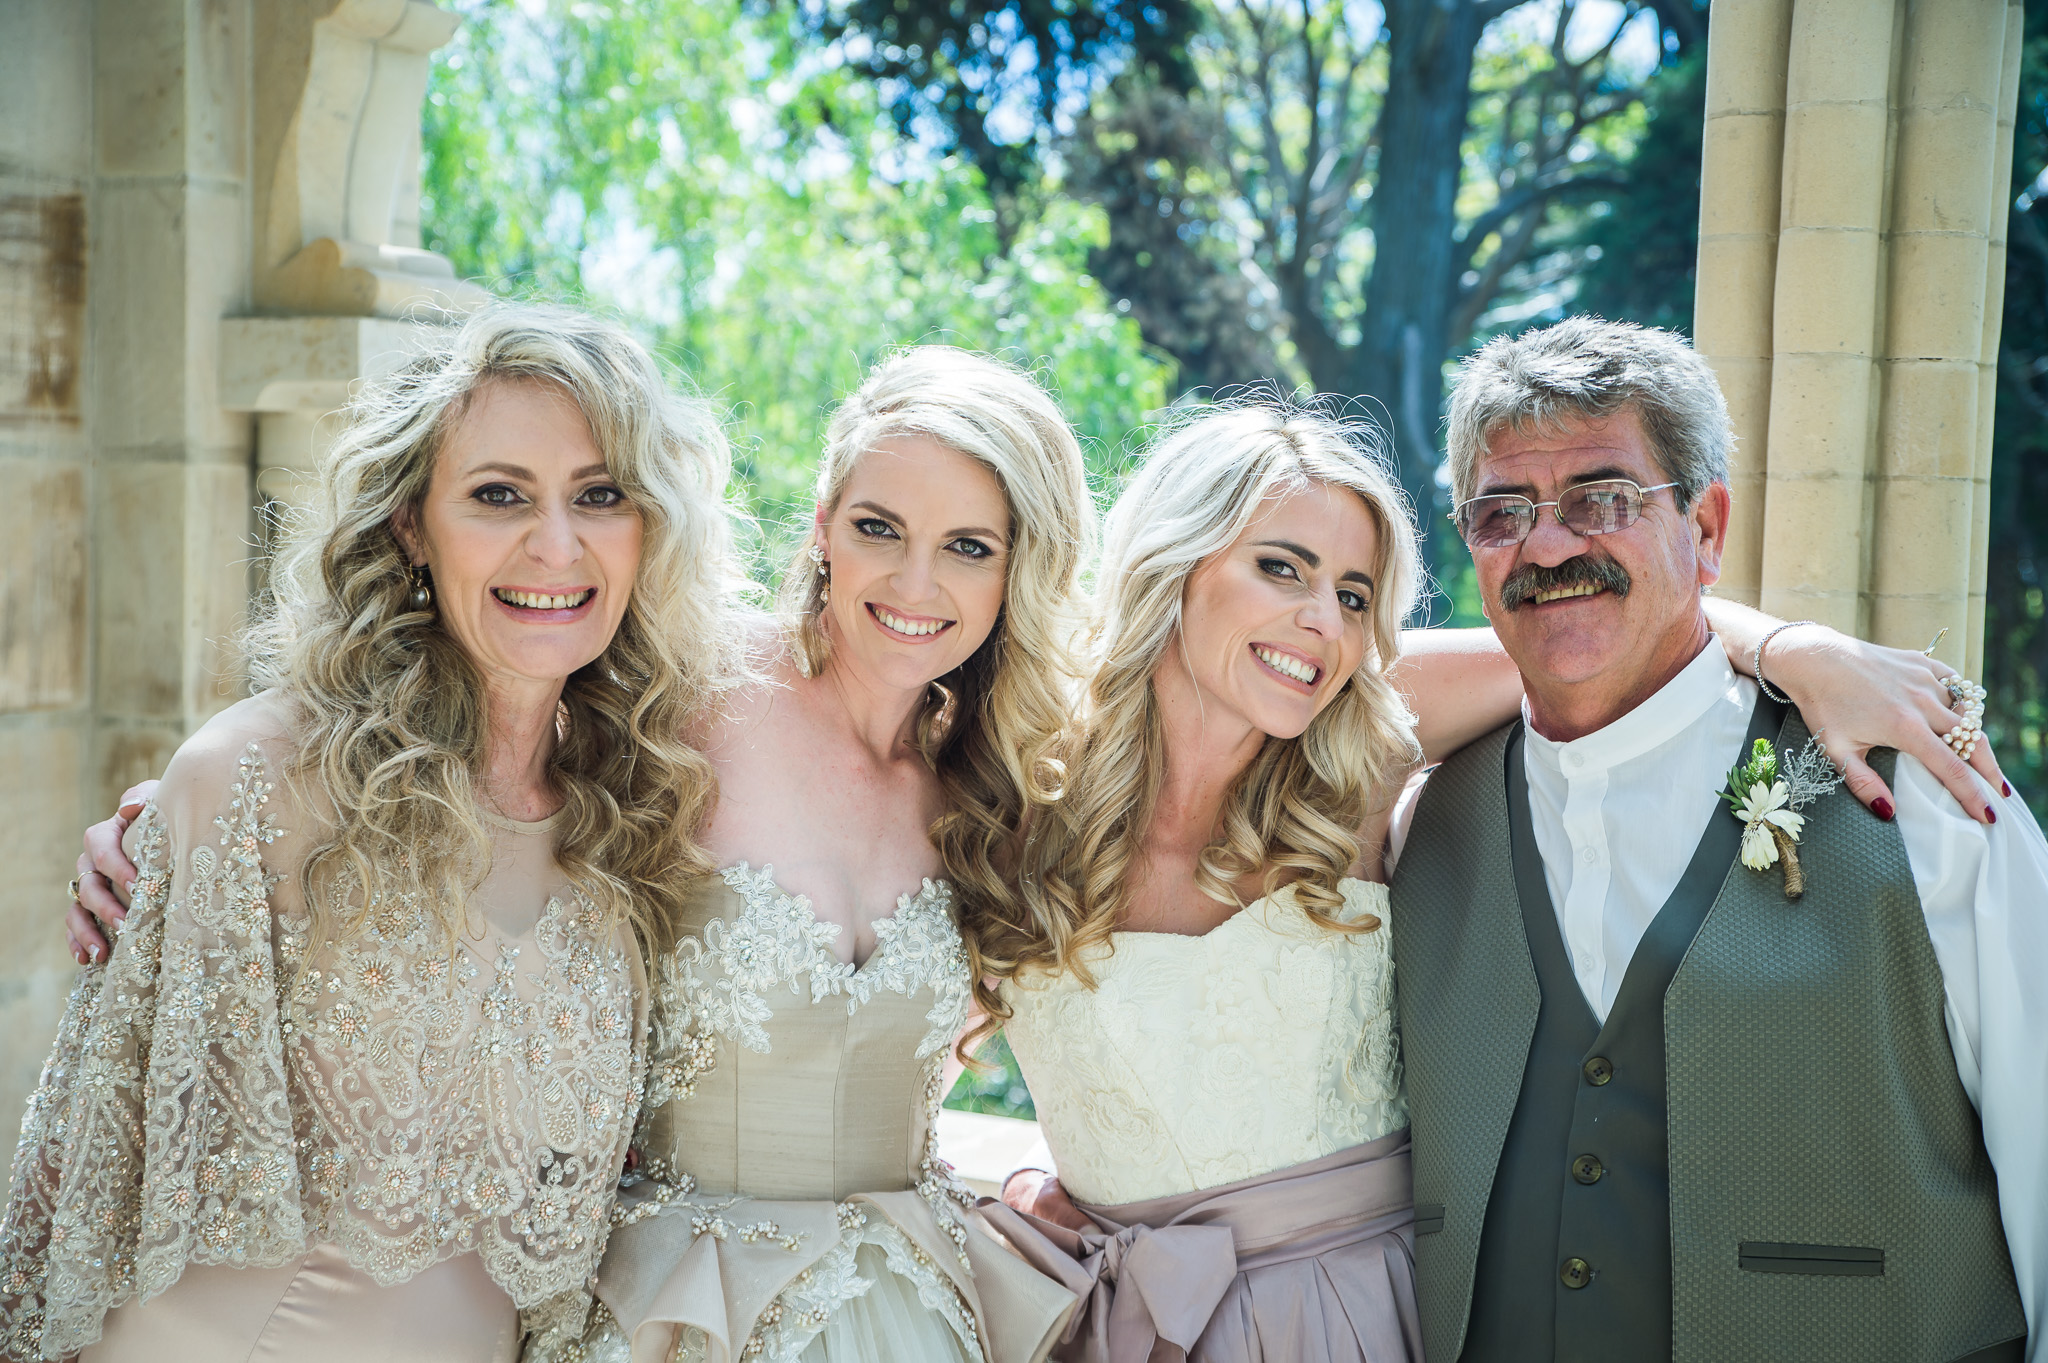 George and Charlene - Shepstone Gardens - Sneak Peak (15 of 49).jpg